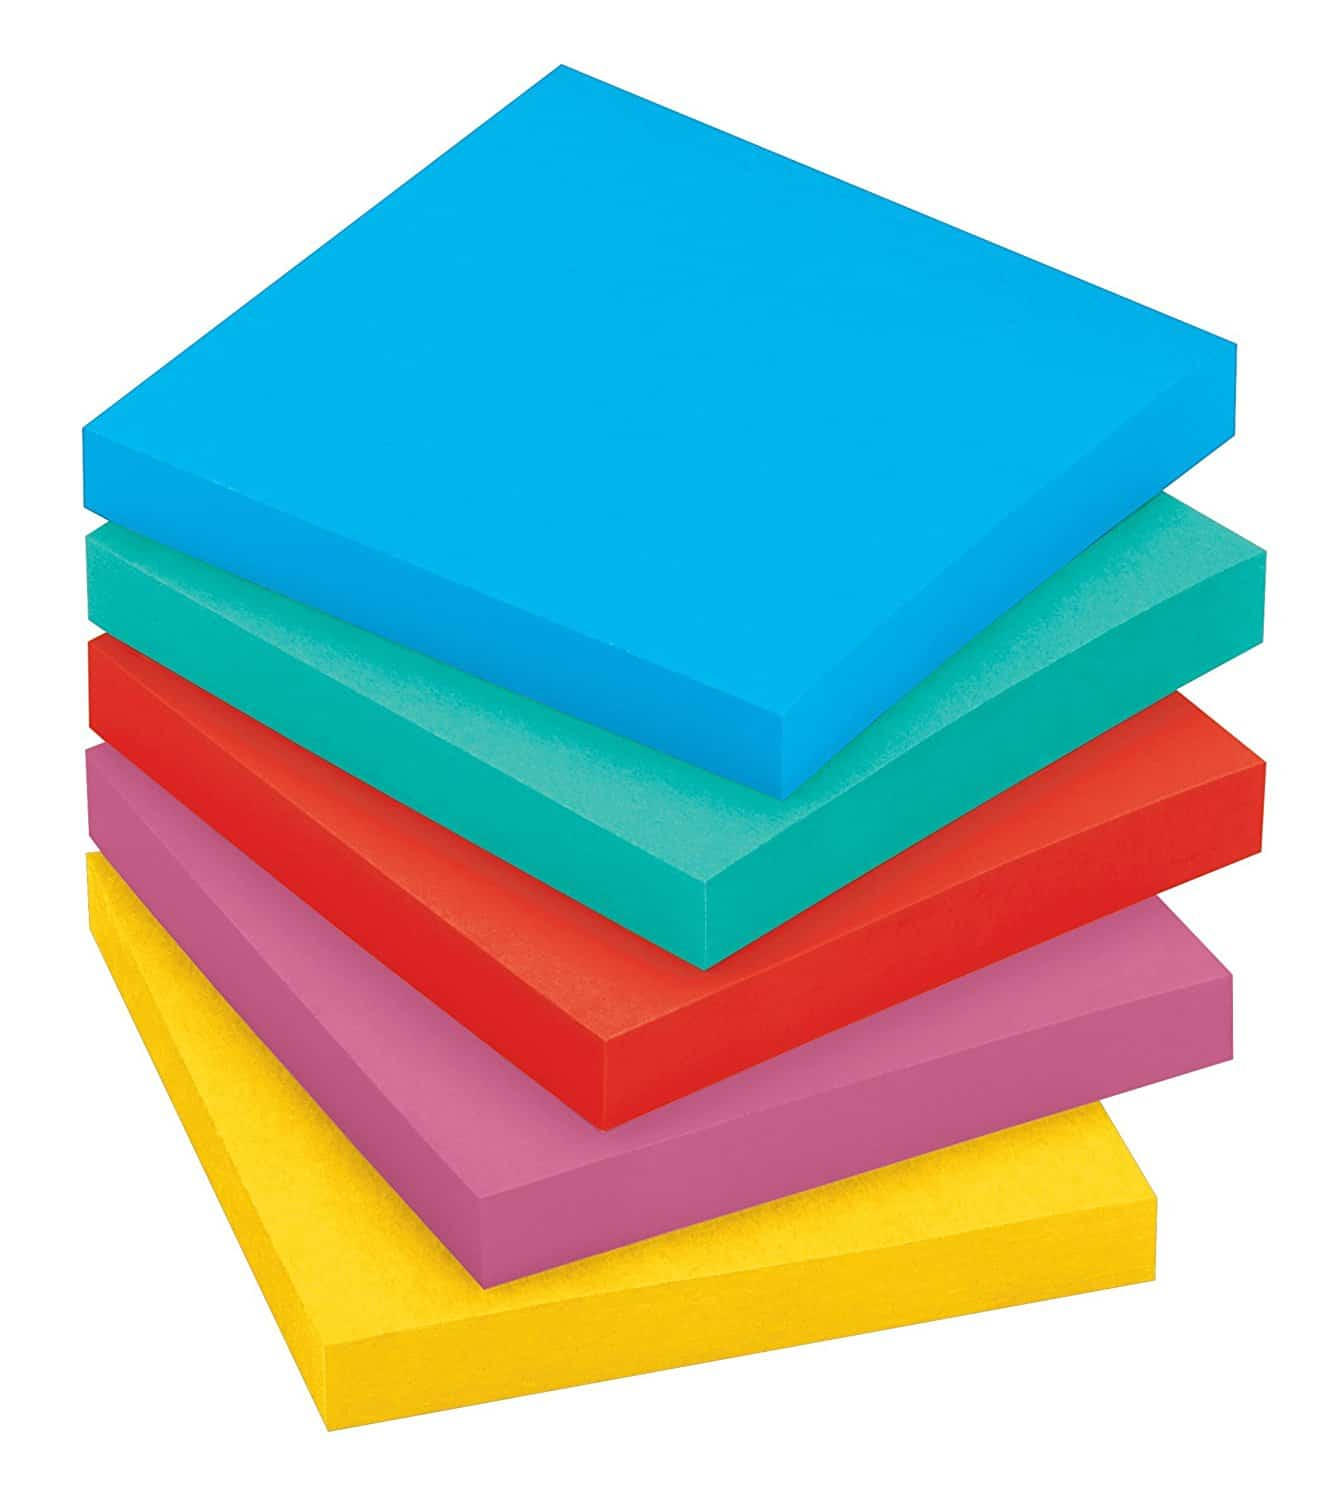 A stack of different coloured sticky note pads